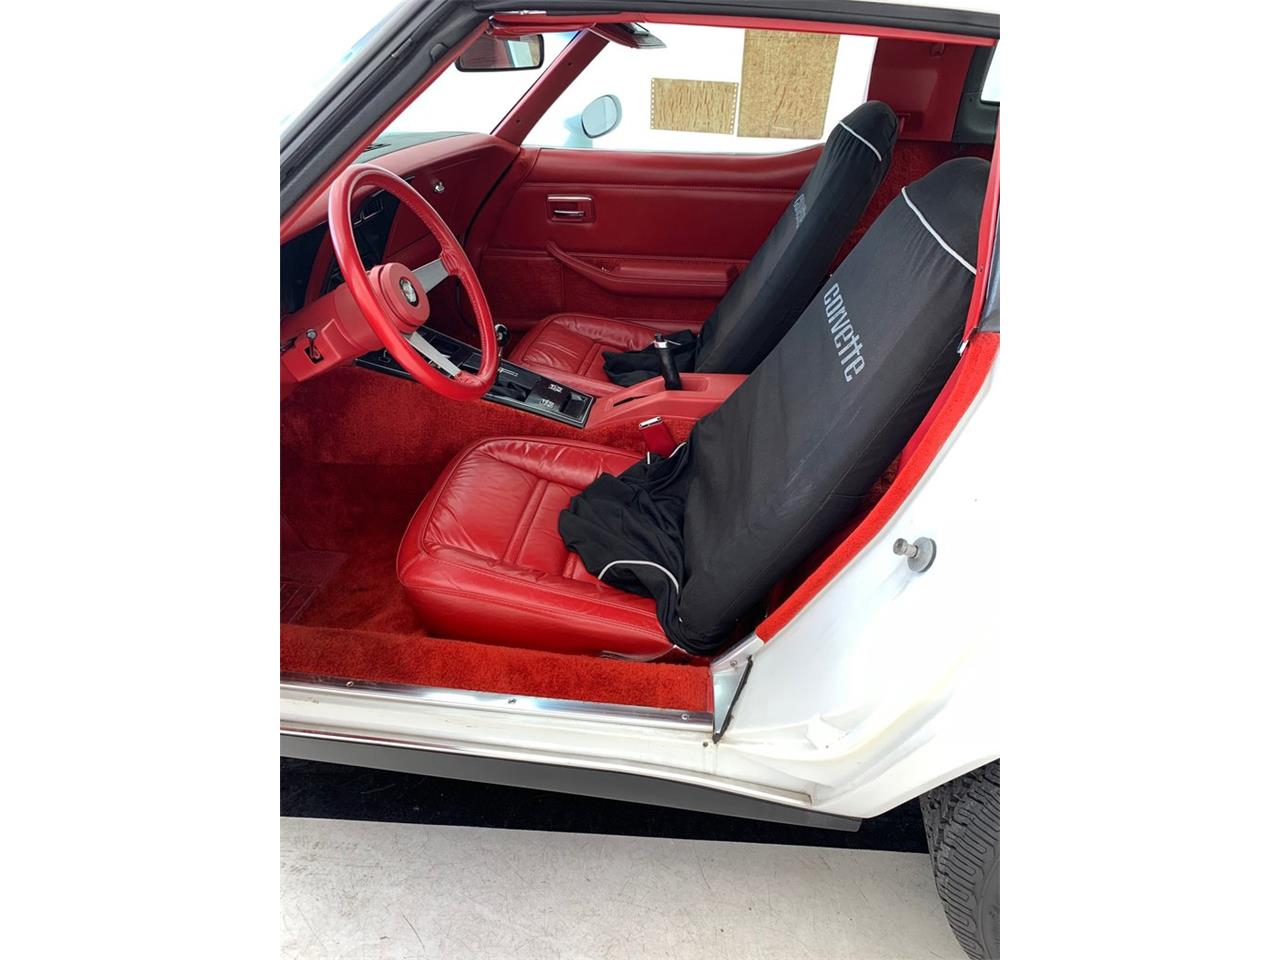 Large Picture of 1978 Corvette located in Greensboro North Carolina Offered by GAA Classic Cars Auctions - QJKW